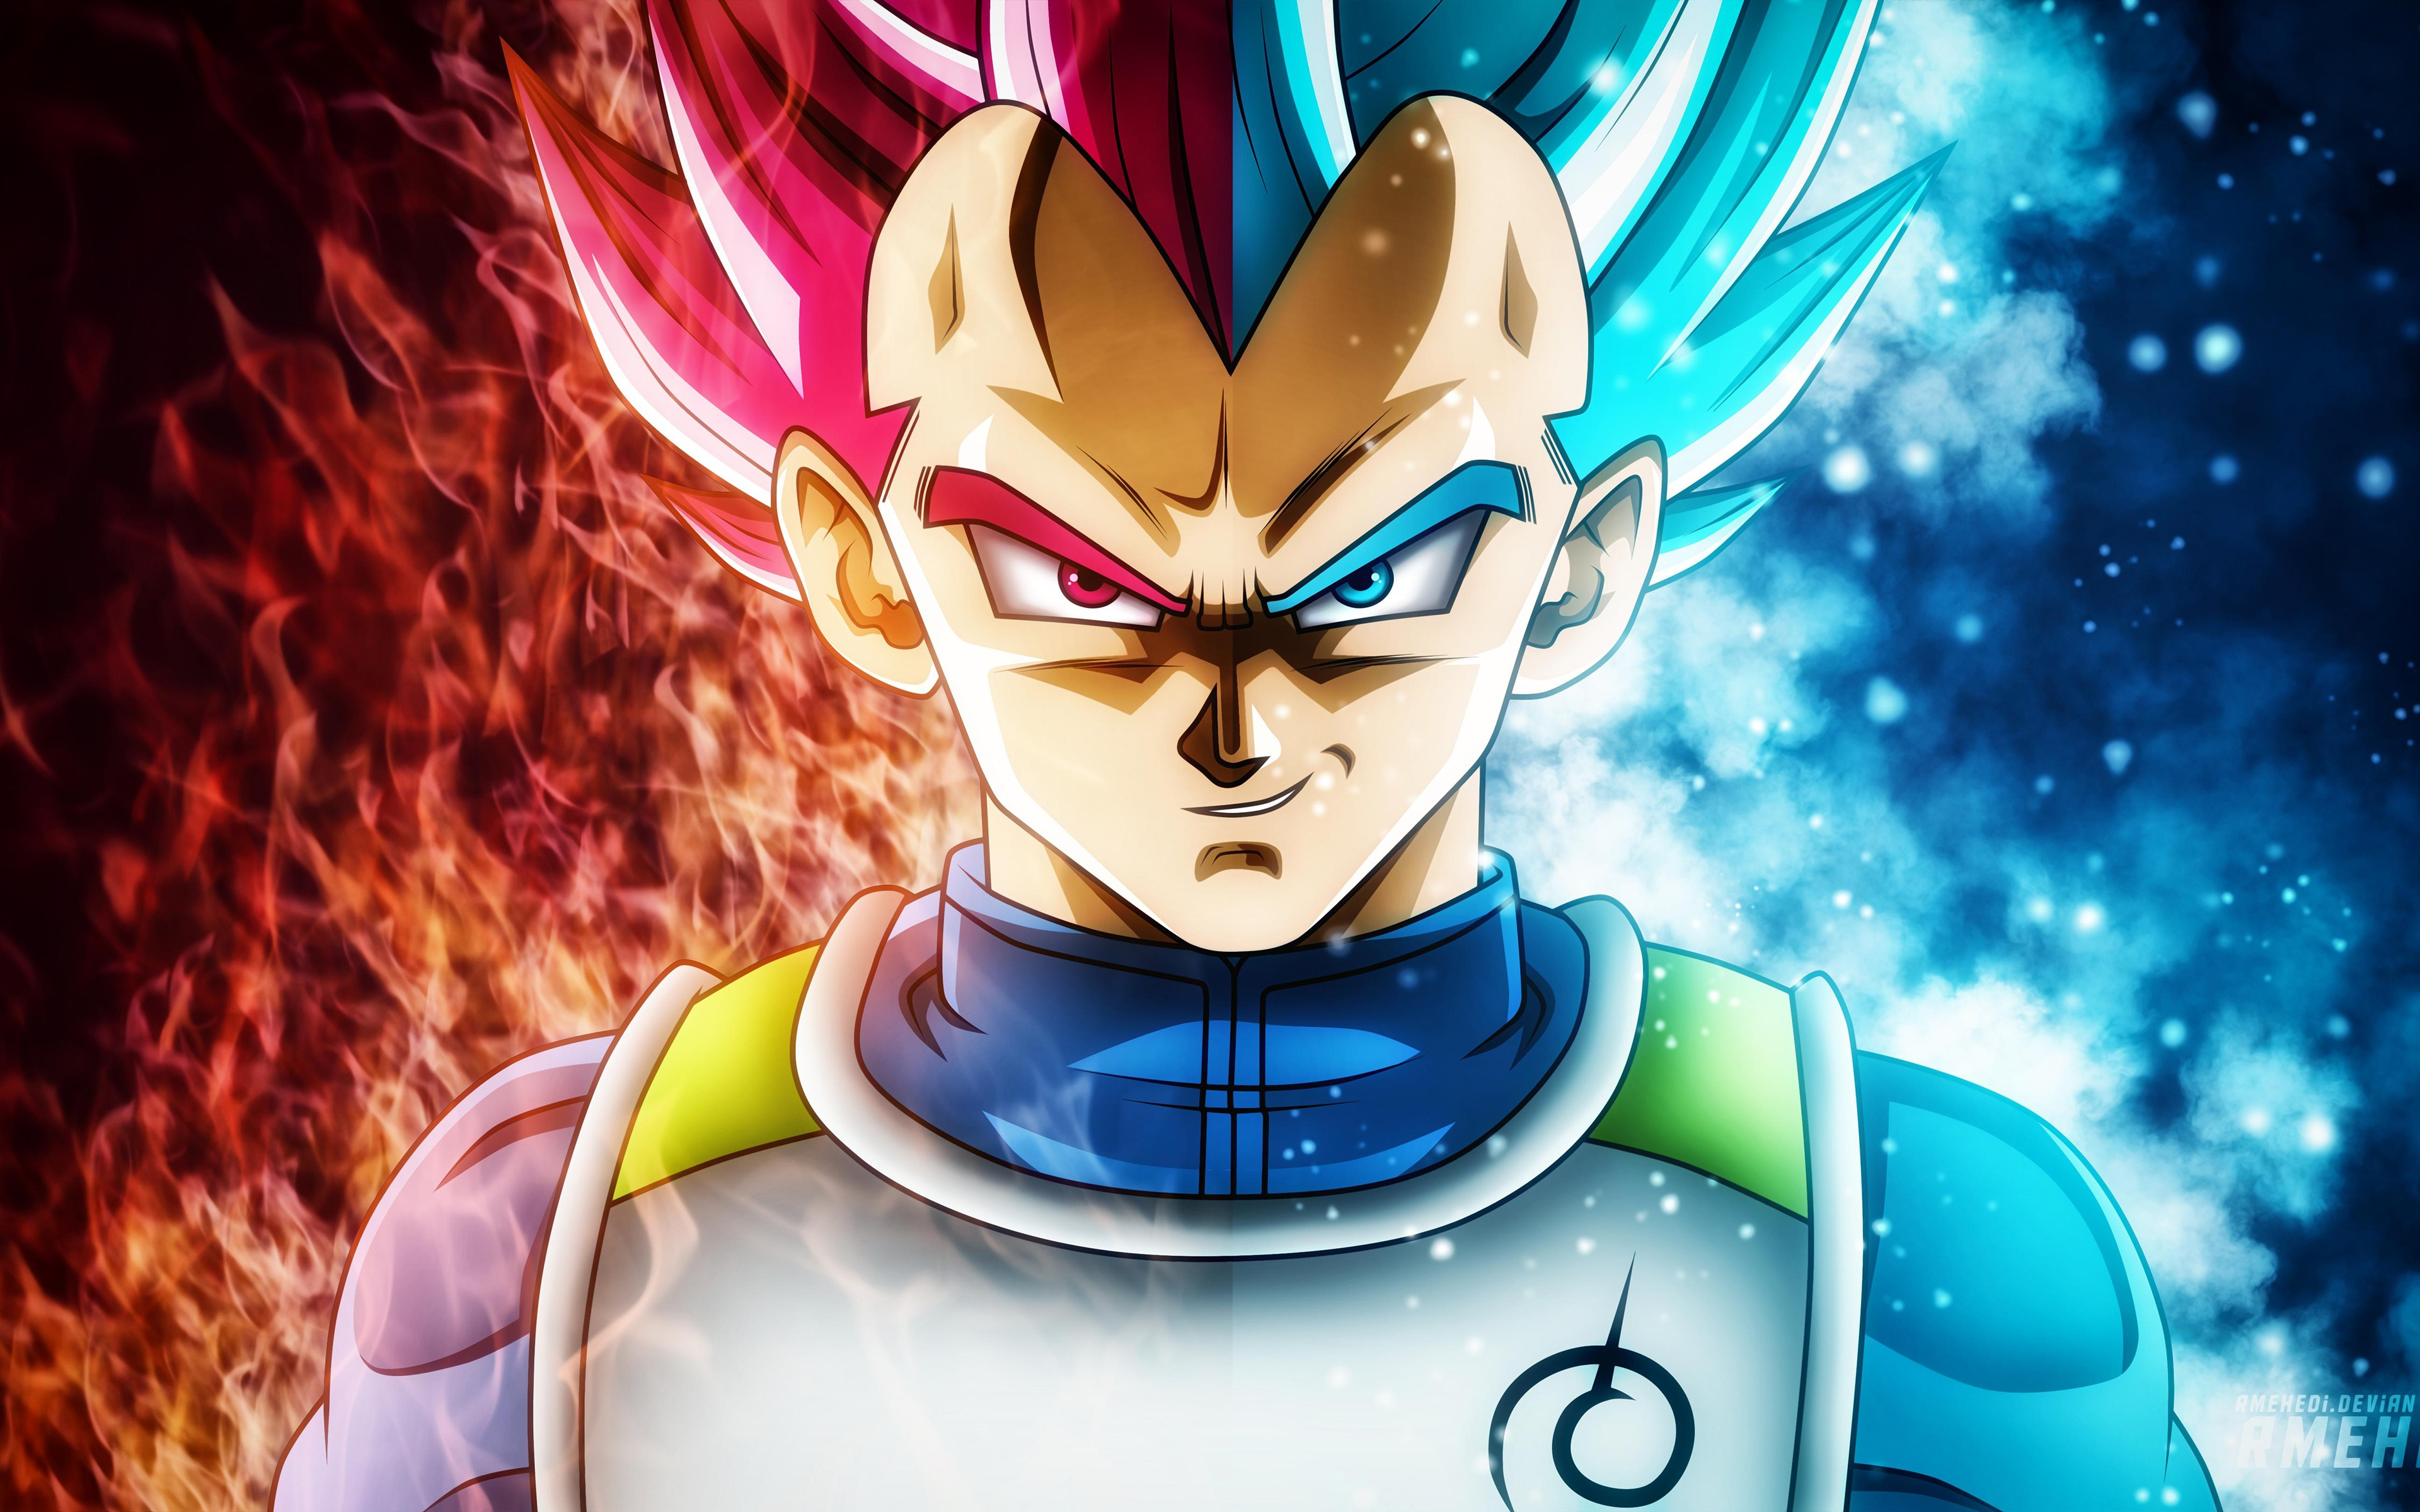 Girl Looking At Moon Wallpaper Red Blue Flame Vegeta Dragon Ball Super Ultra Hd Preview